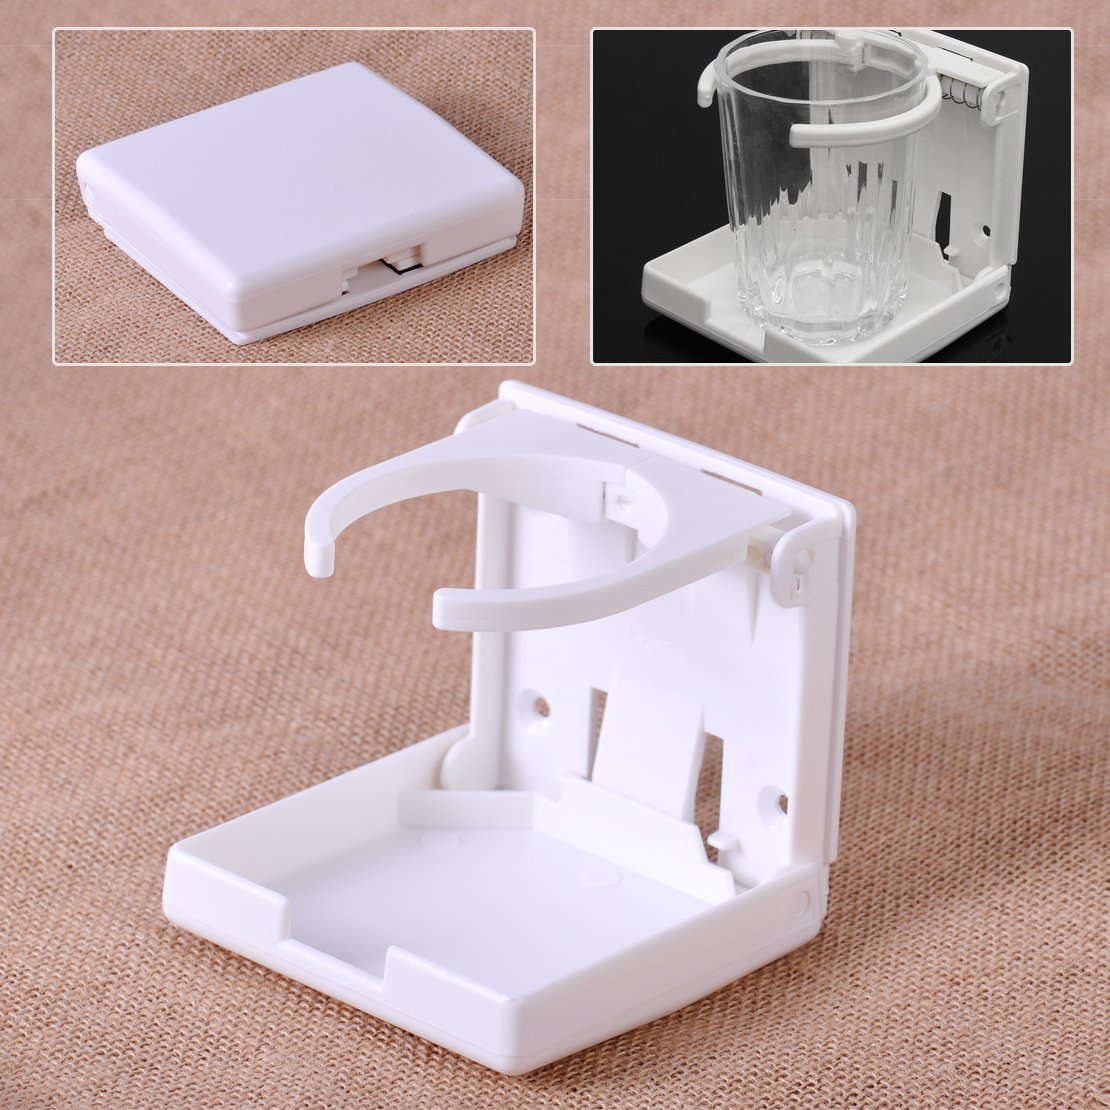 CITALL Plastic White Adjustable Folding Retainer Arms Beverage Cup Drink Holder Fit for Car Trucks Marine Boat Caravan Yacht